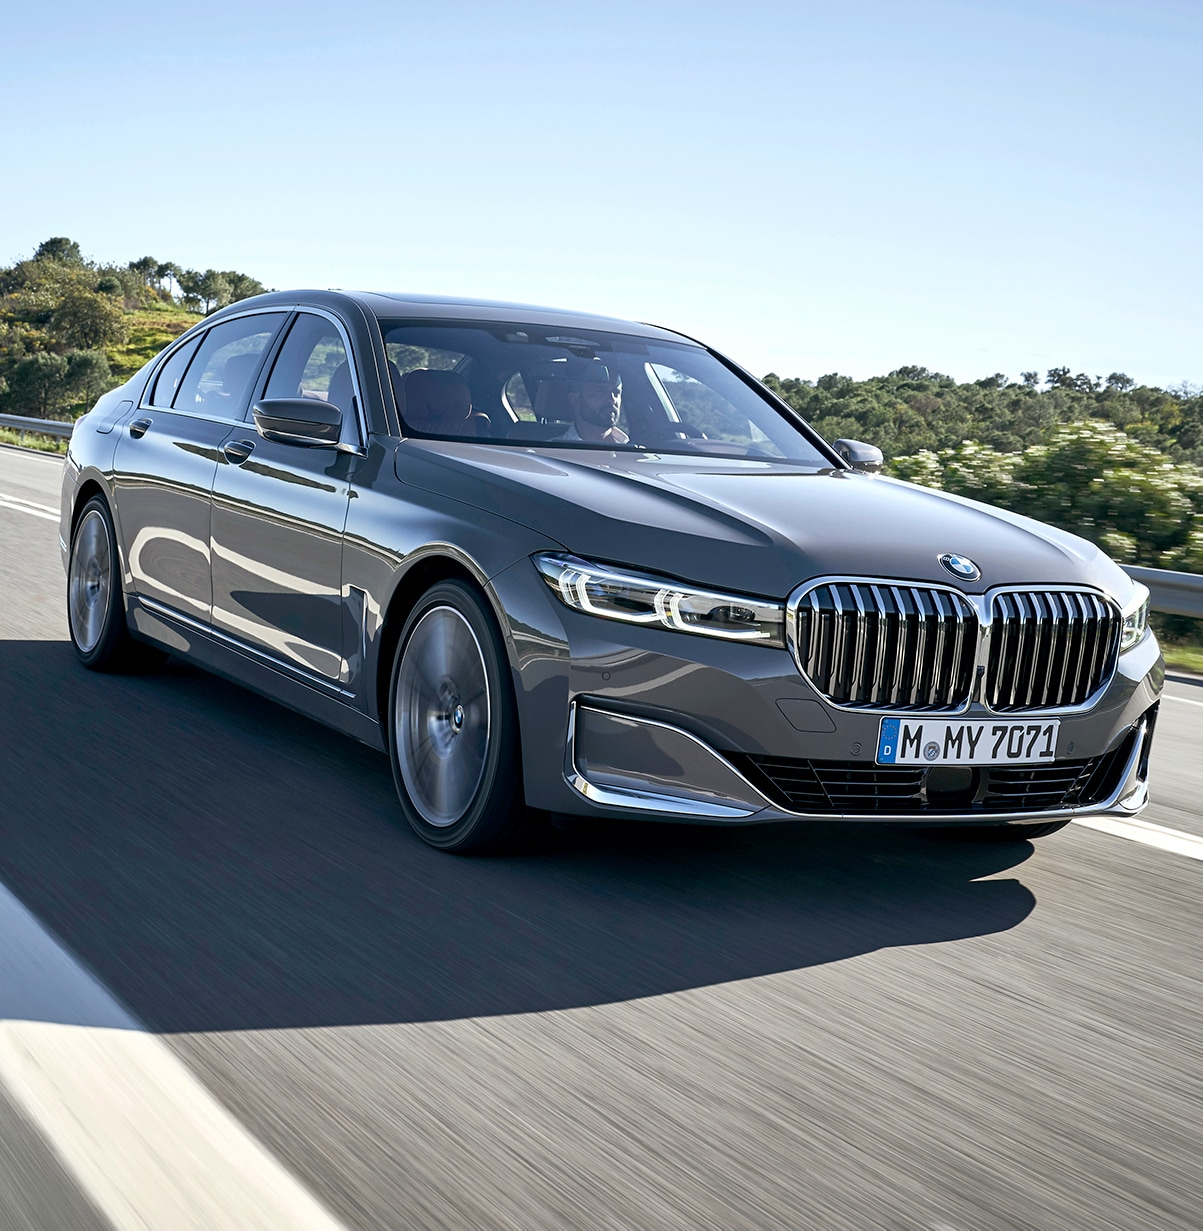 Model Features of the 2020 BMW 7 Series at BMW of Rockville | Man driving BMW 2020 7 Series